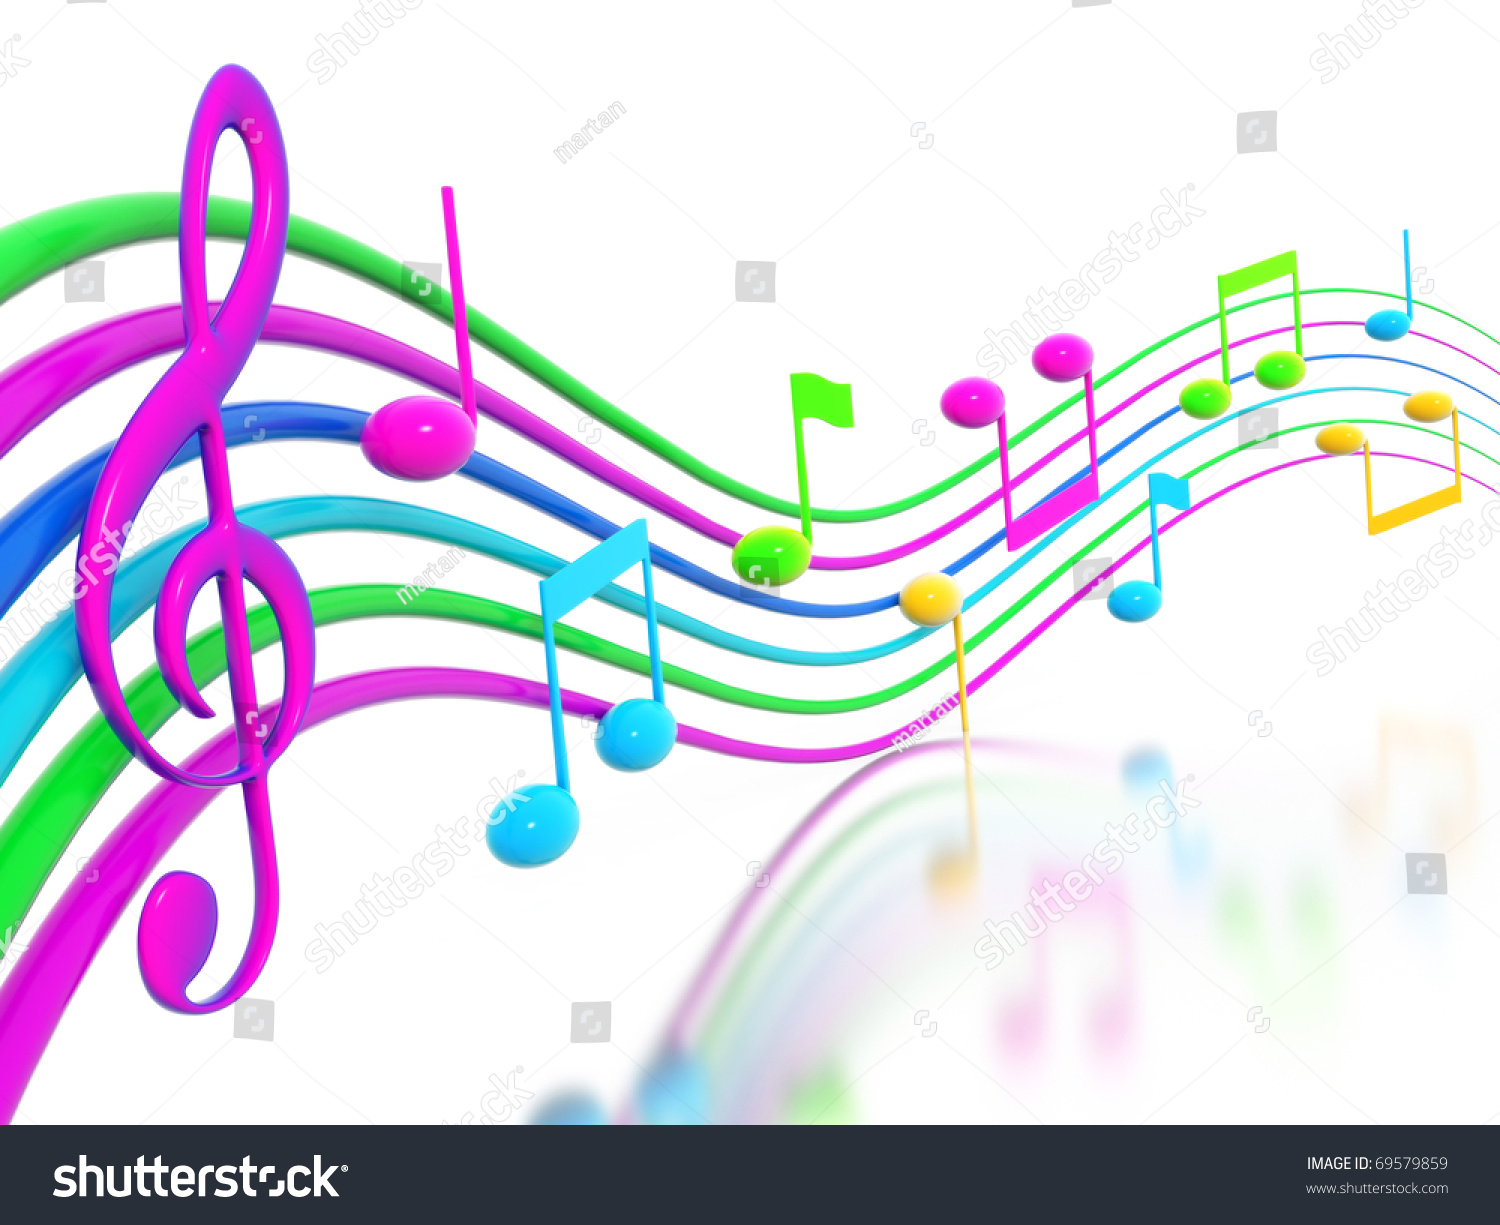 Rainbow Music Stock Images: 3d Render Stock Photo 69579859 : Shutterstock